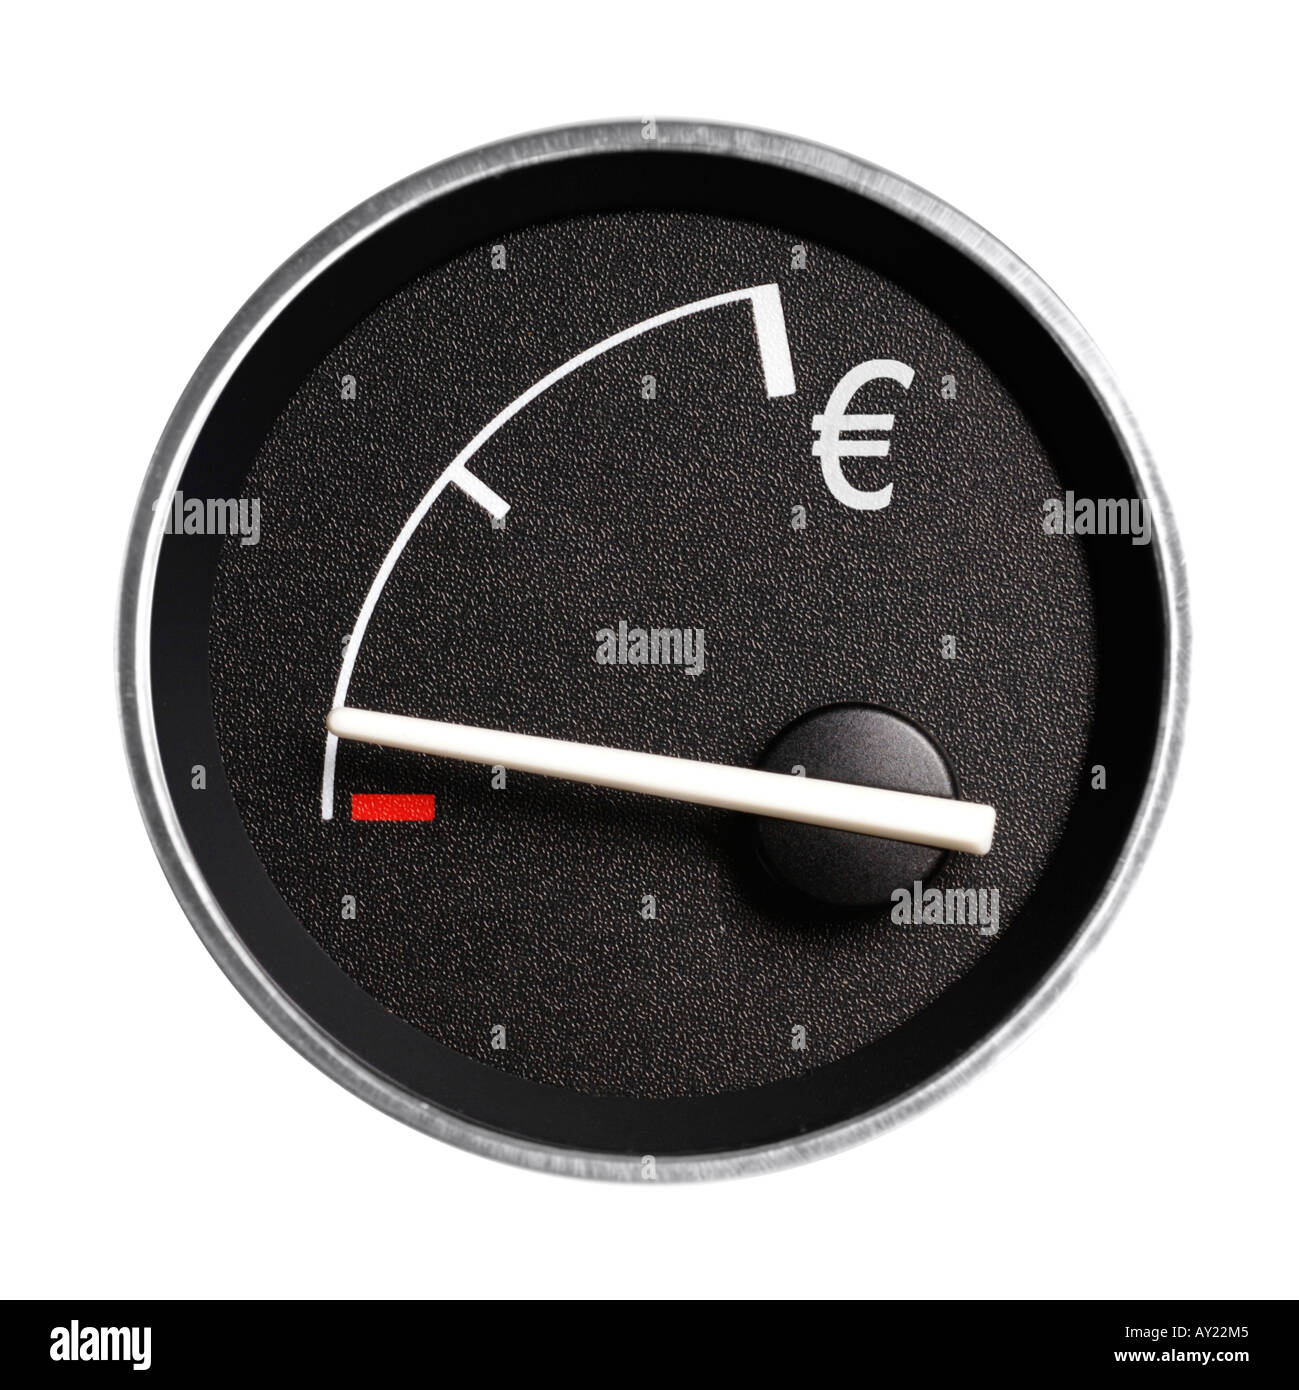 Fuel gauge marked with Euro sign, showing empty - Stock Image